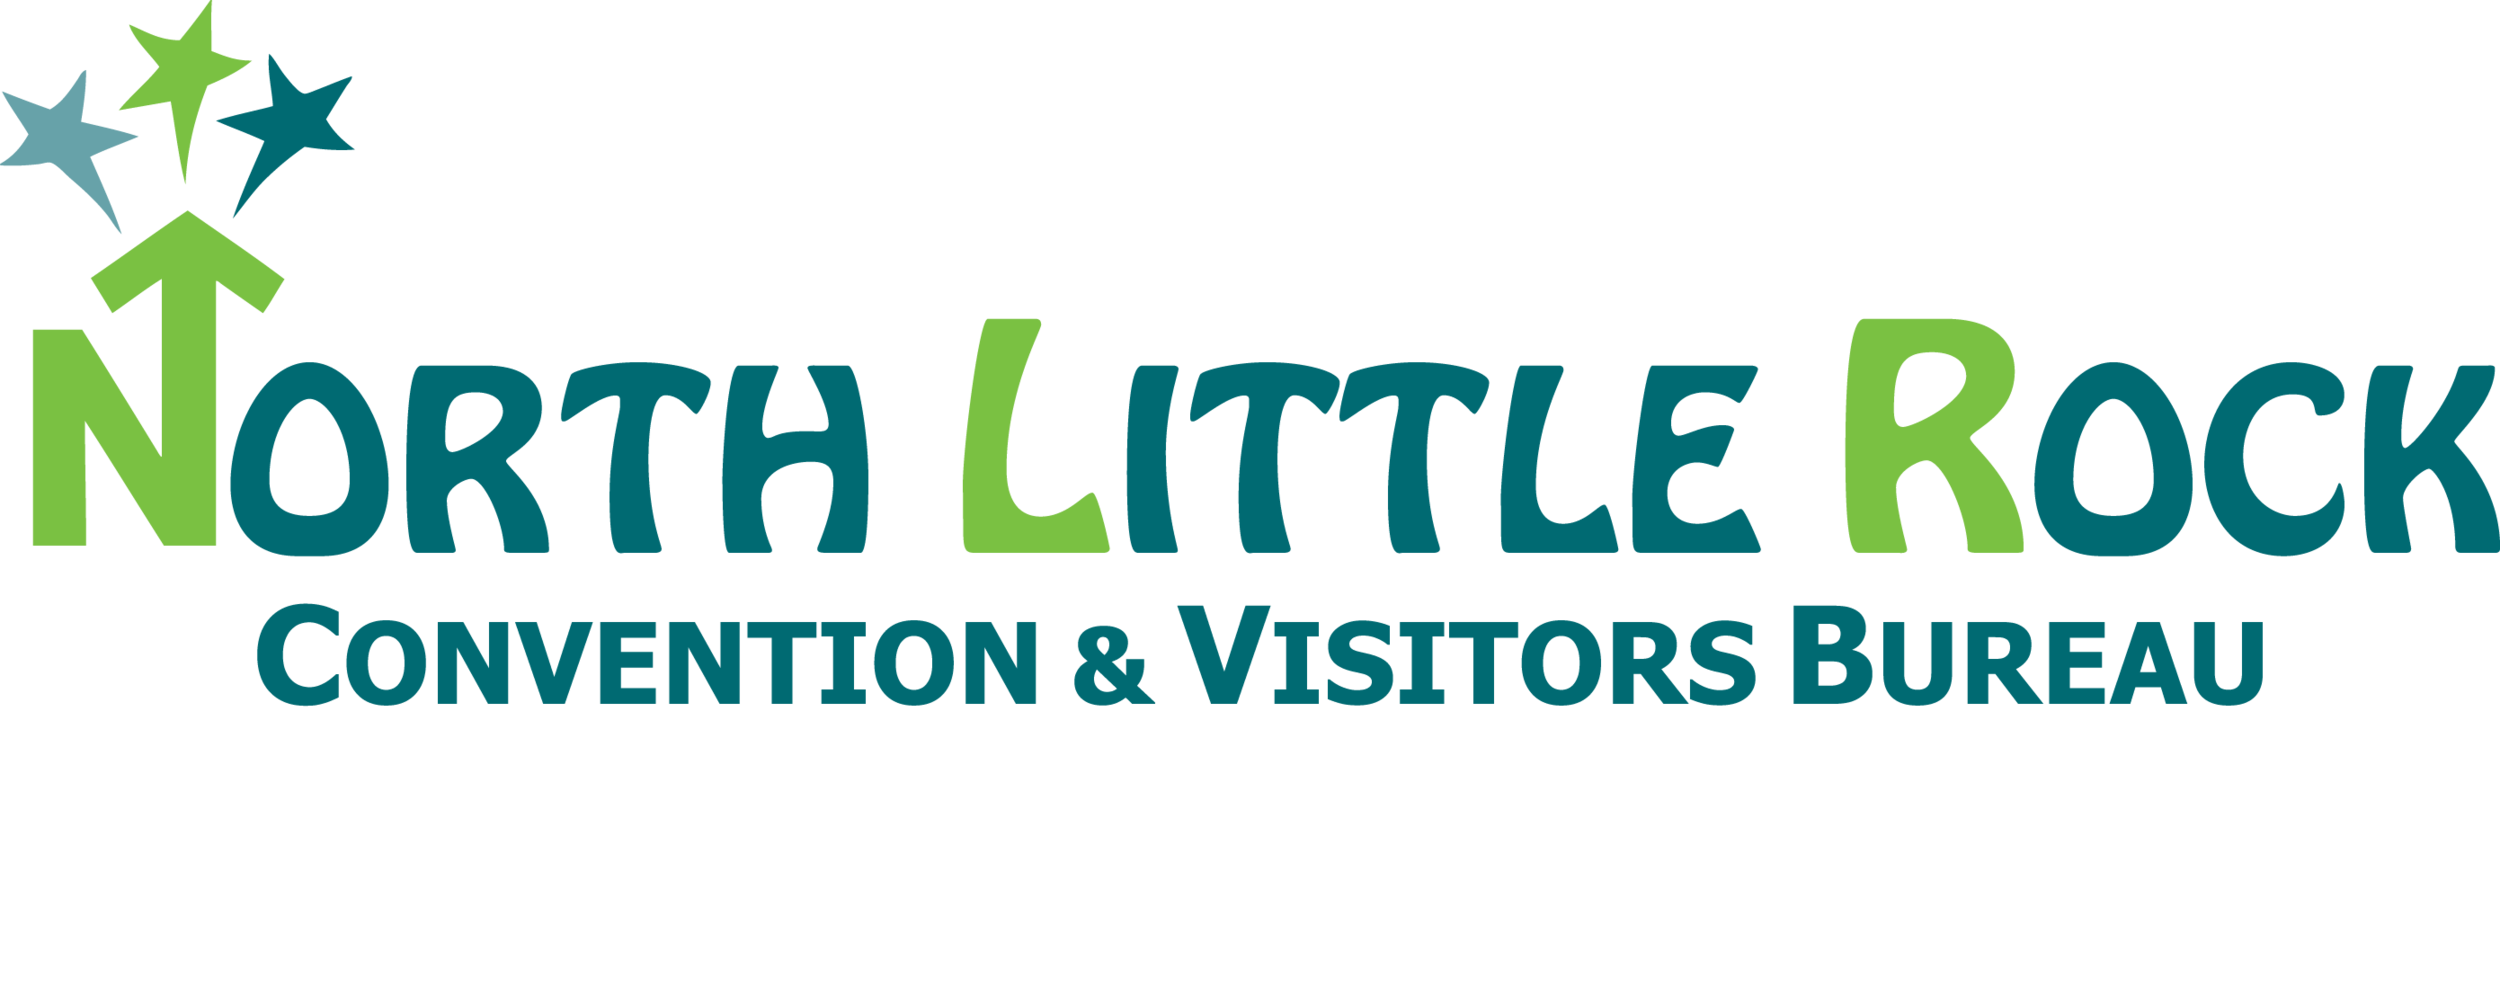 Coming to the festival from out of town or out of state? Contact the NLRCVB to help plan your trip! Visit them online at  www.northlittlerock.org  or call 800-643-4690 or 501-758-1424.